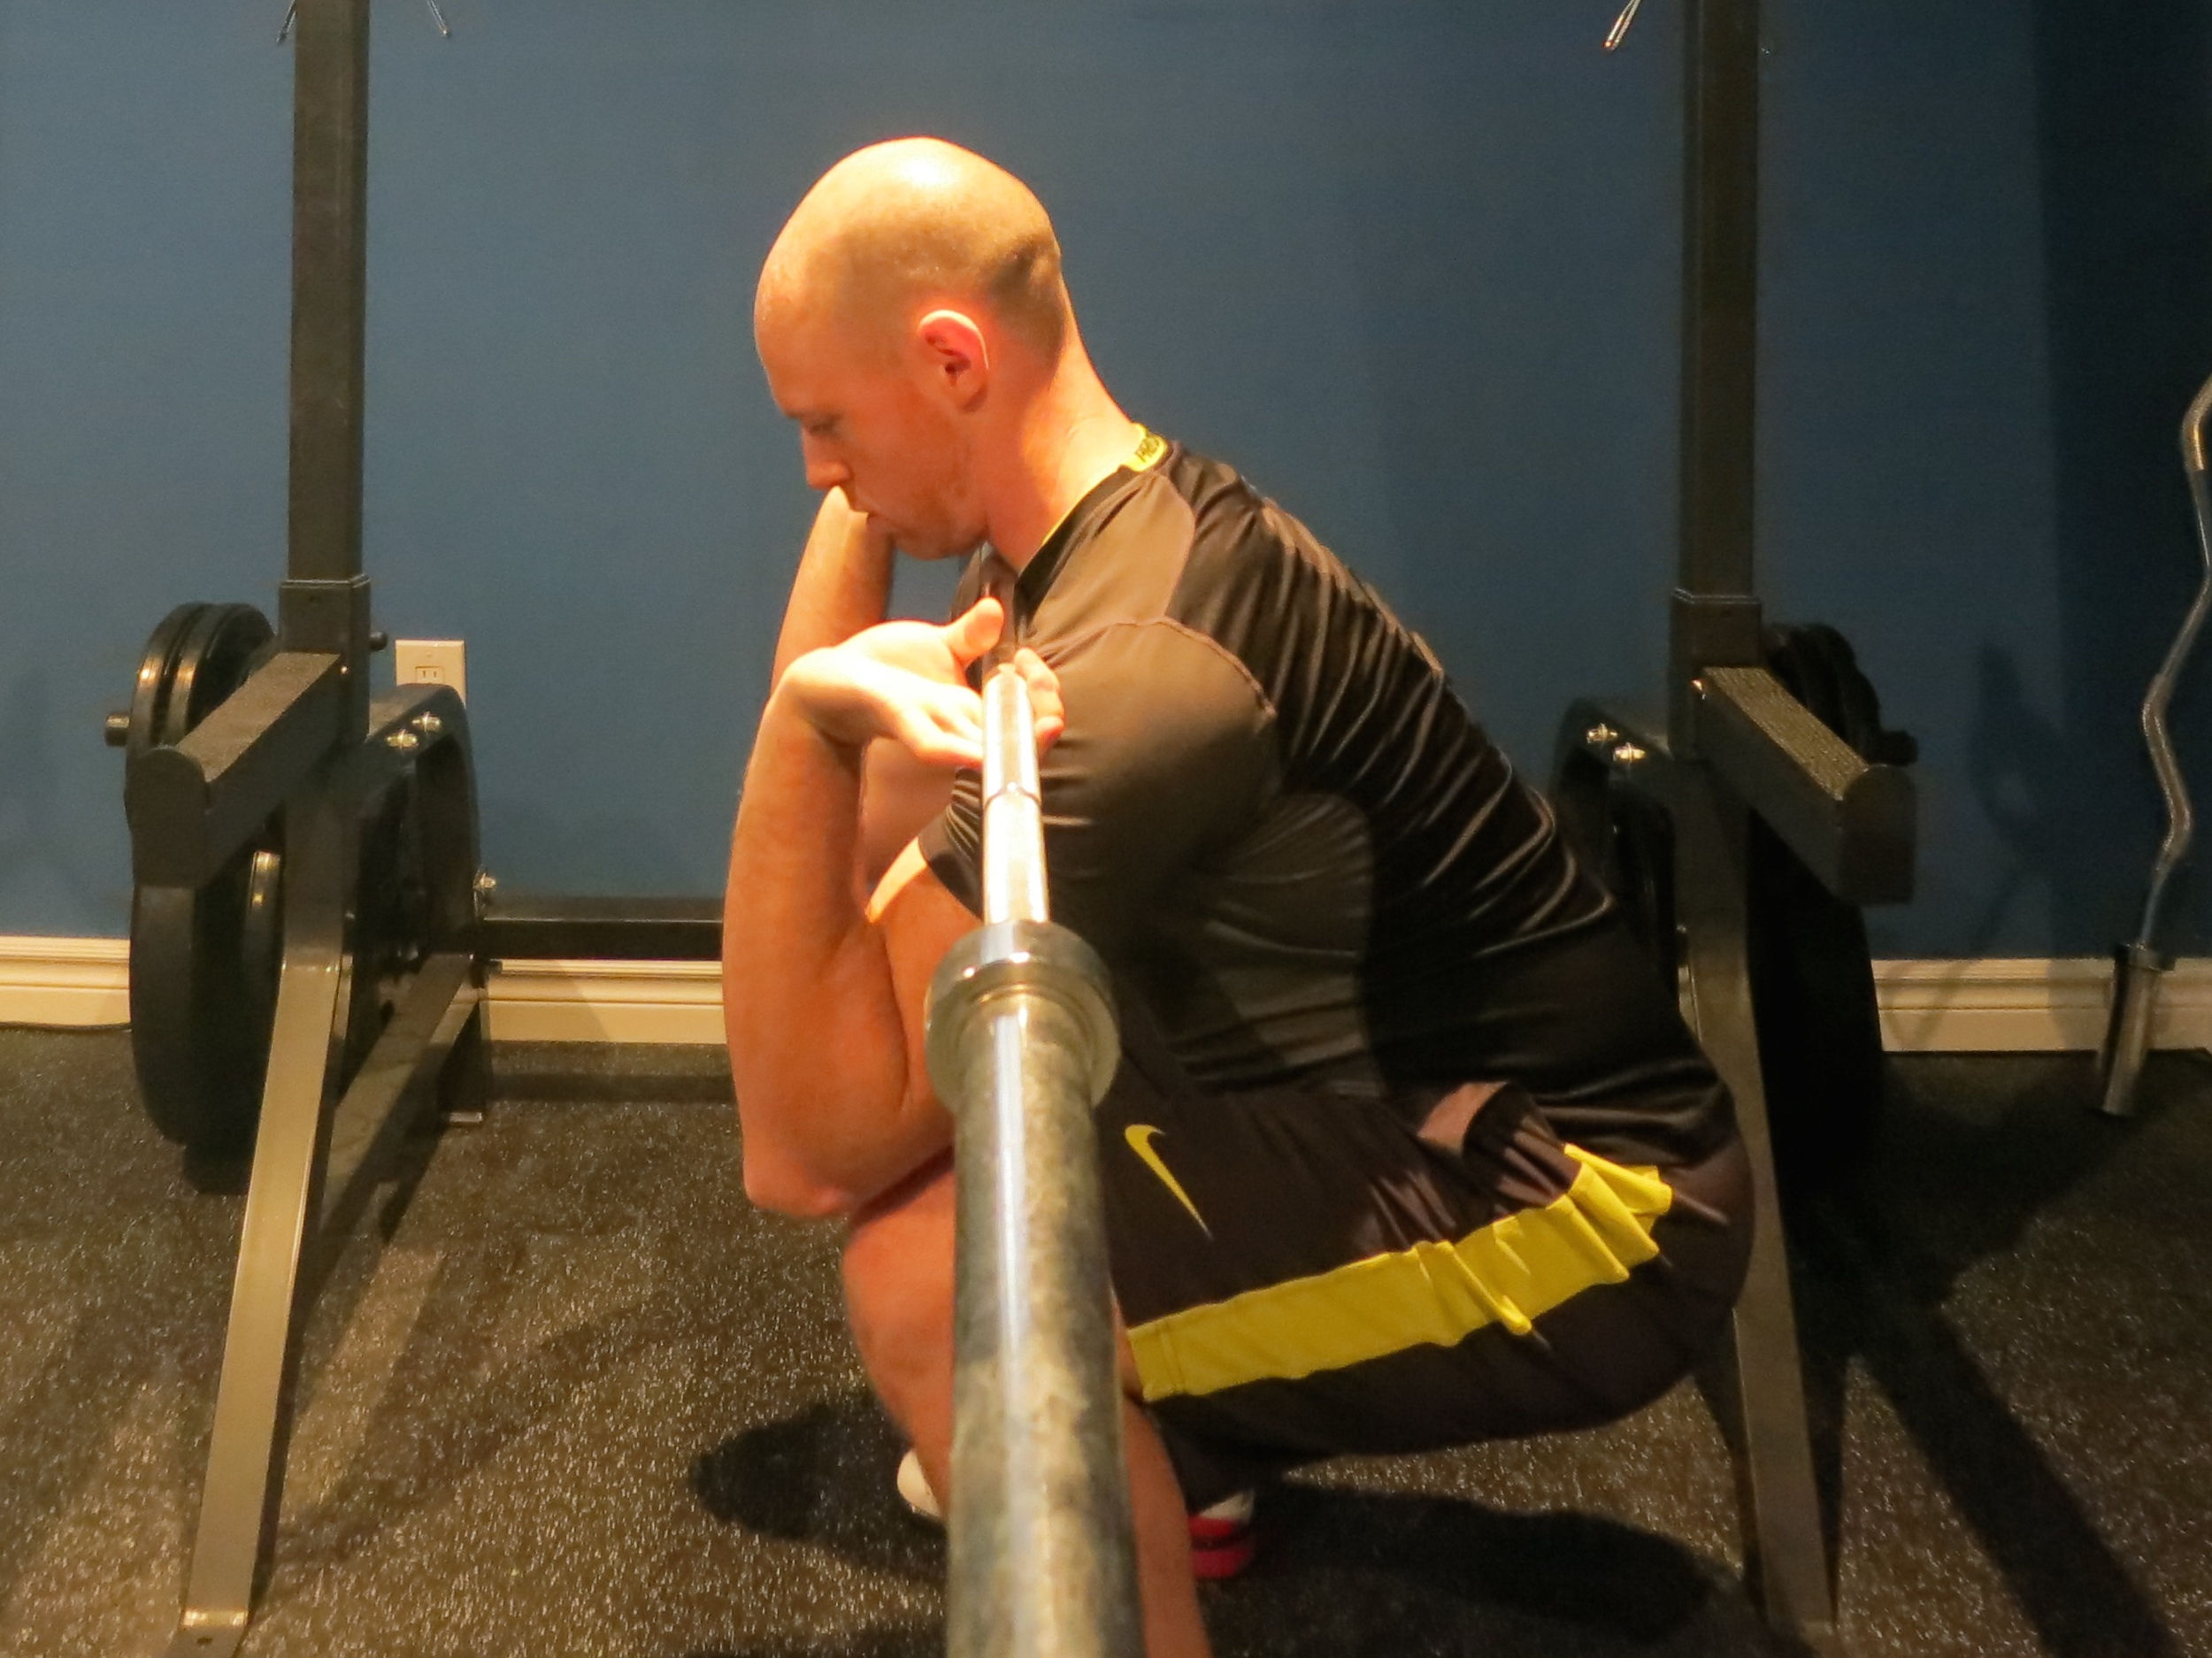 Elbows dropping too far during front squat